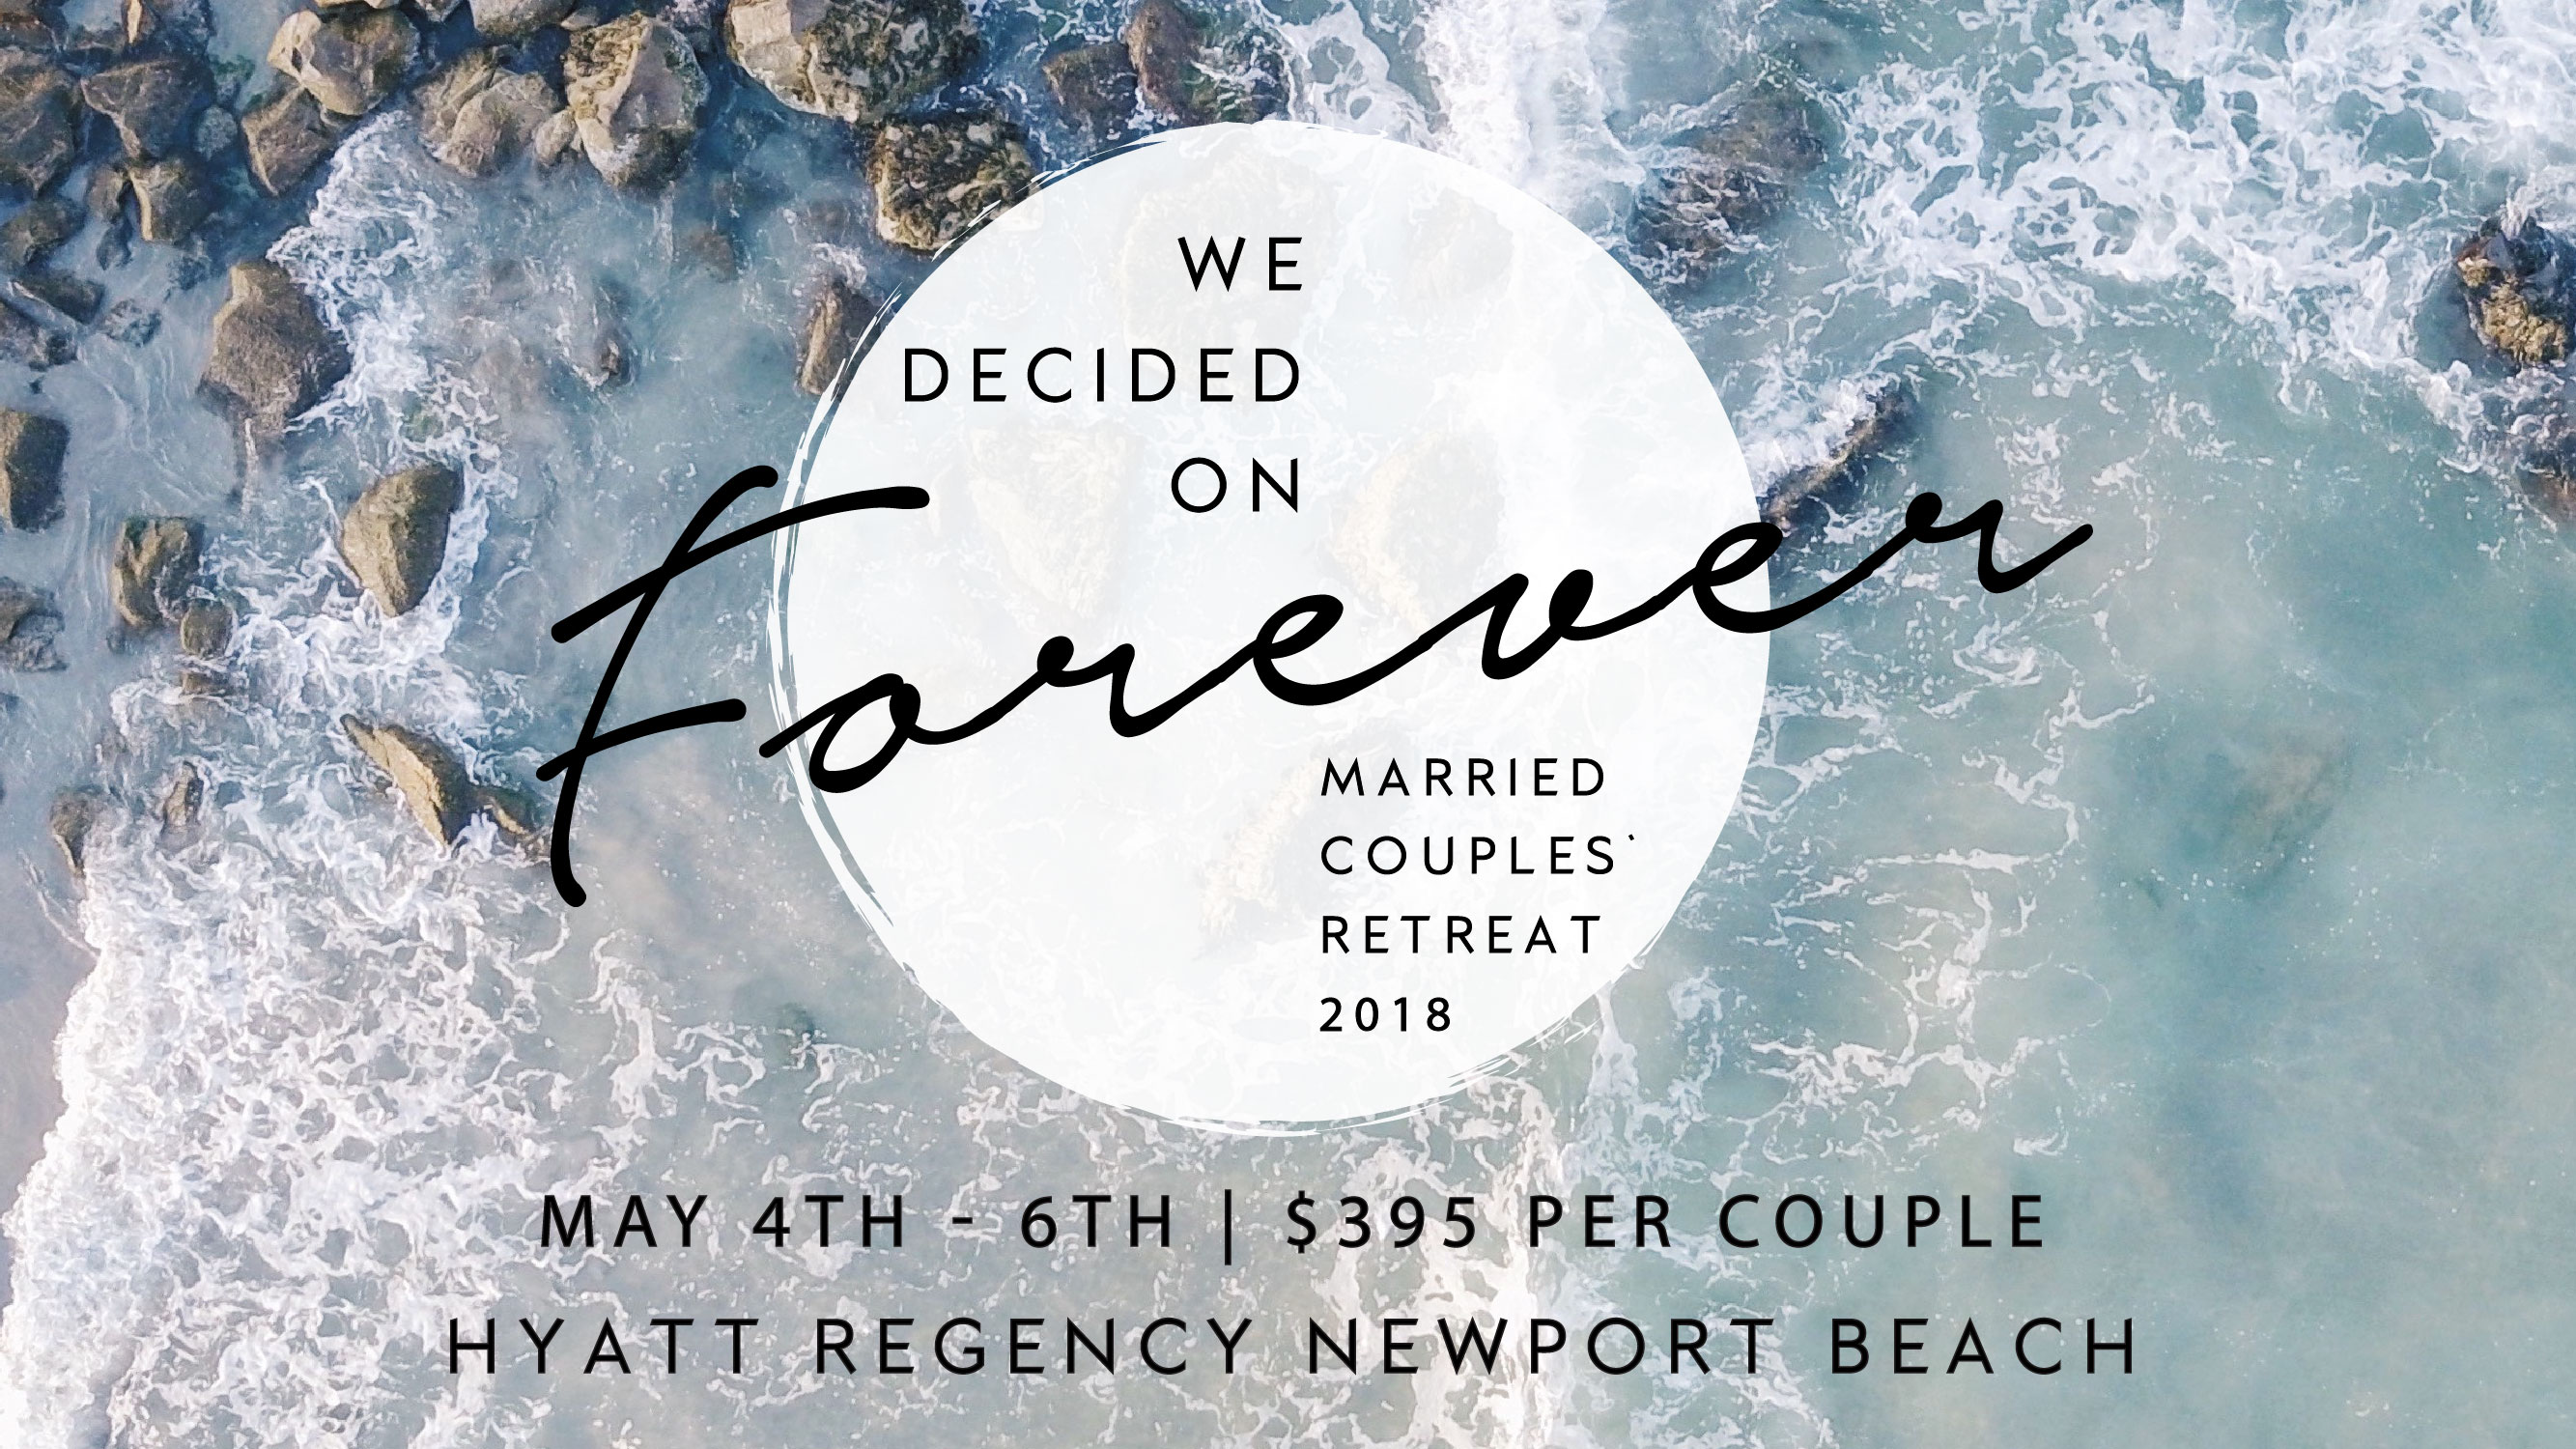 Couples  retreat 2018 cg revised